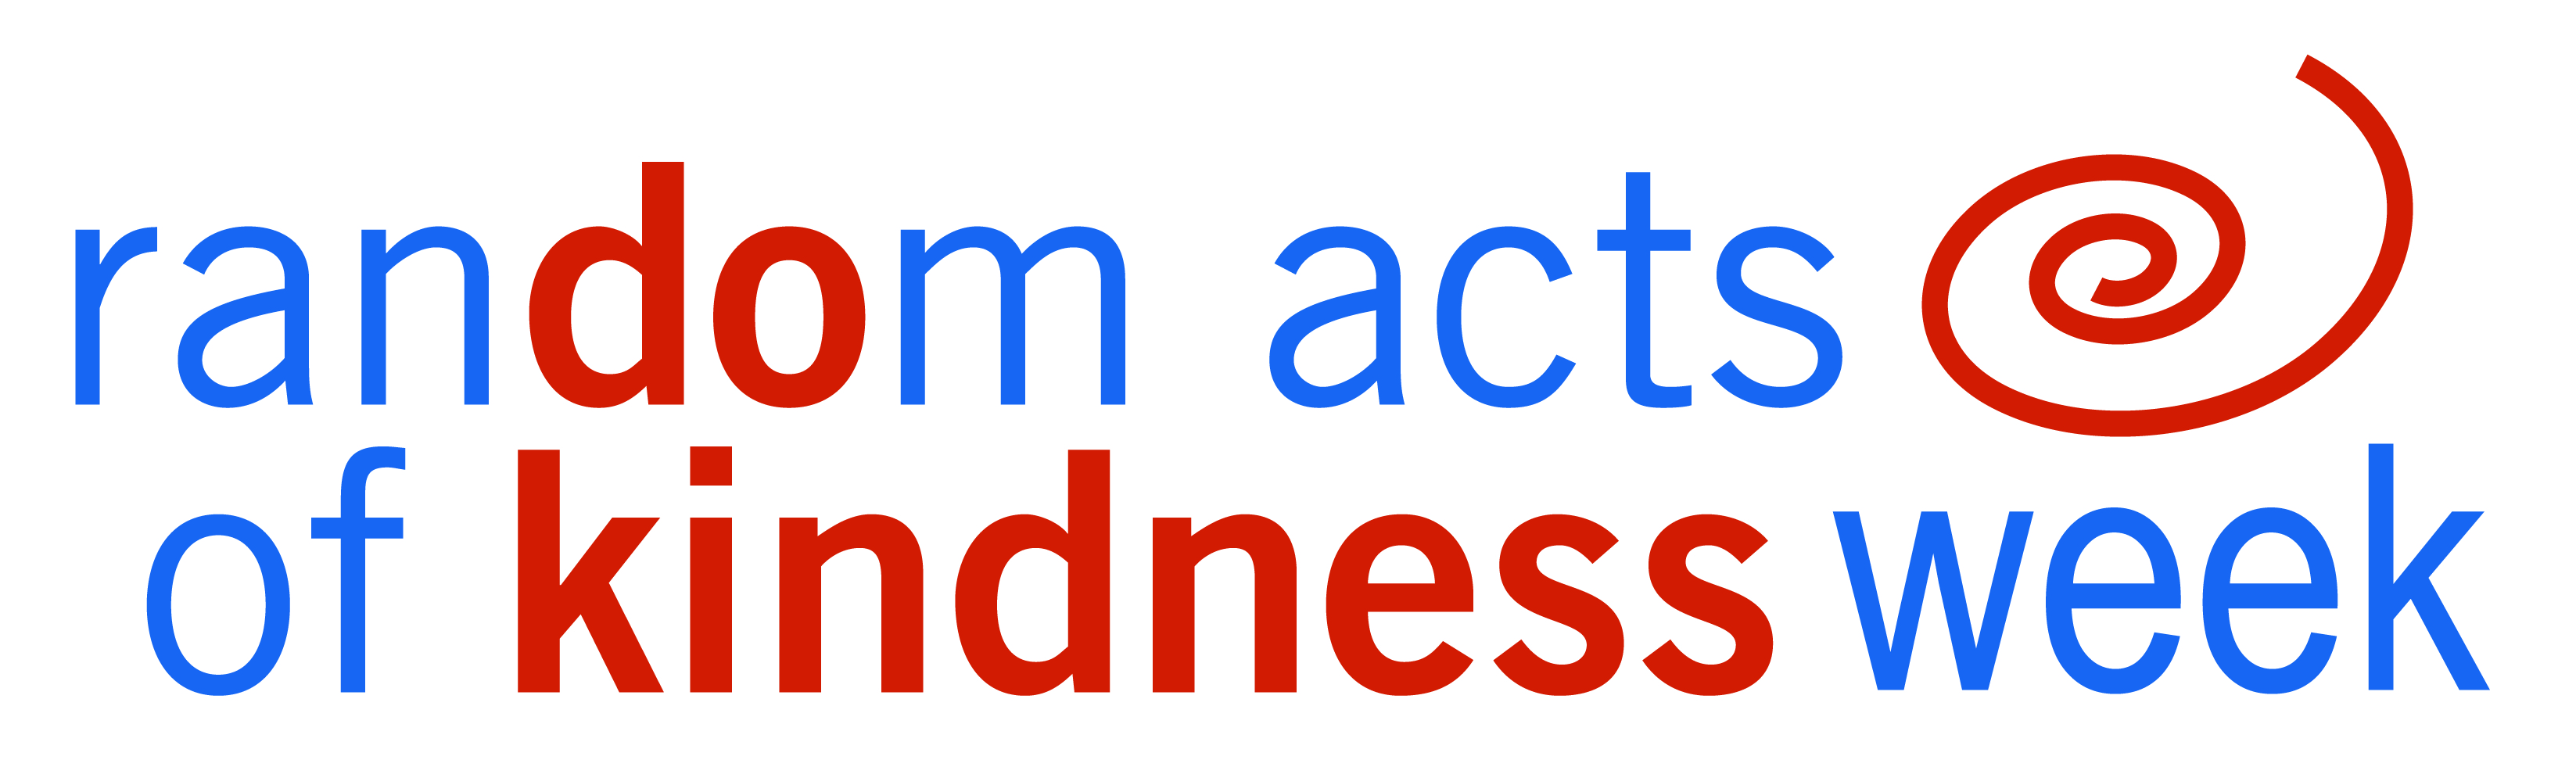 Kindness clipart kindness week. Things to do